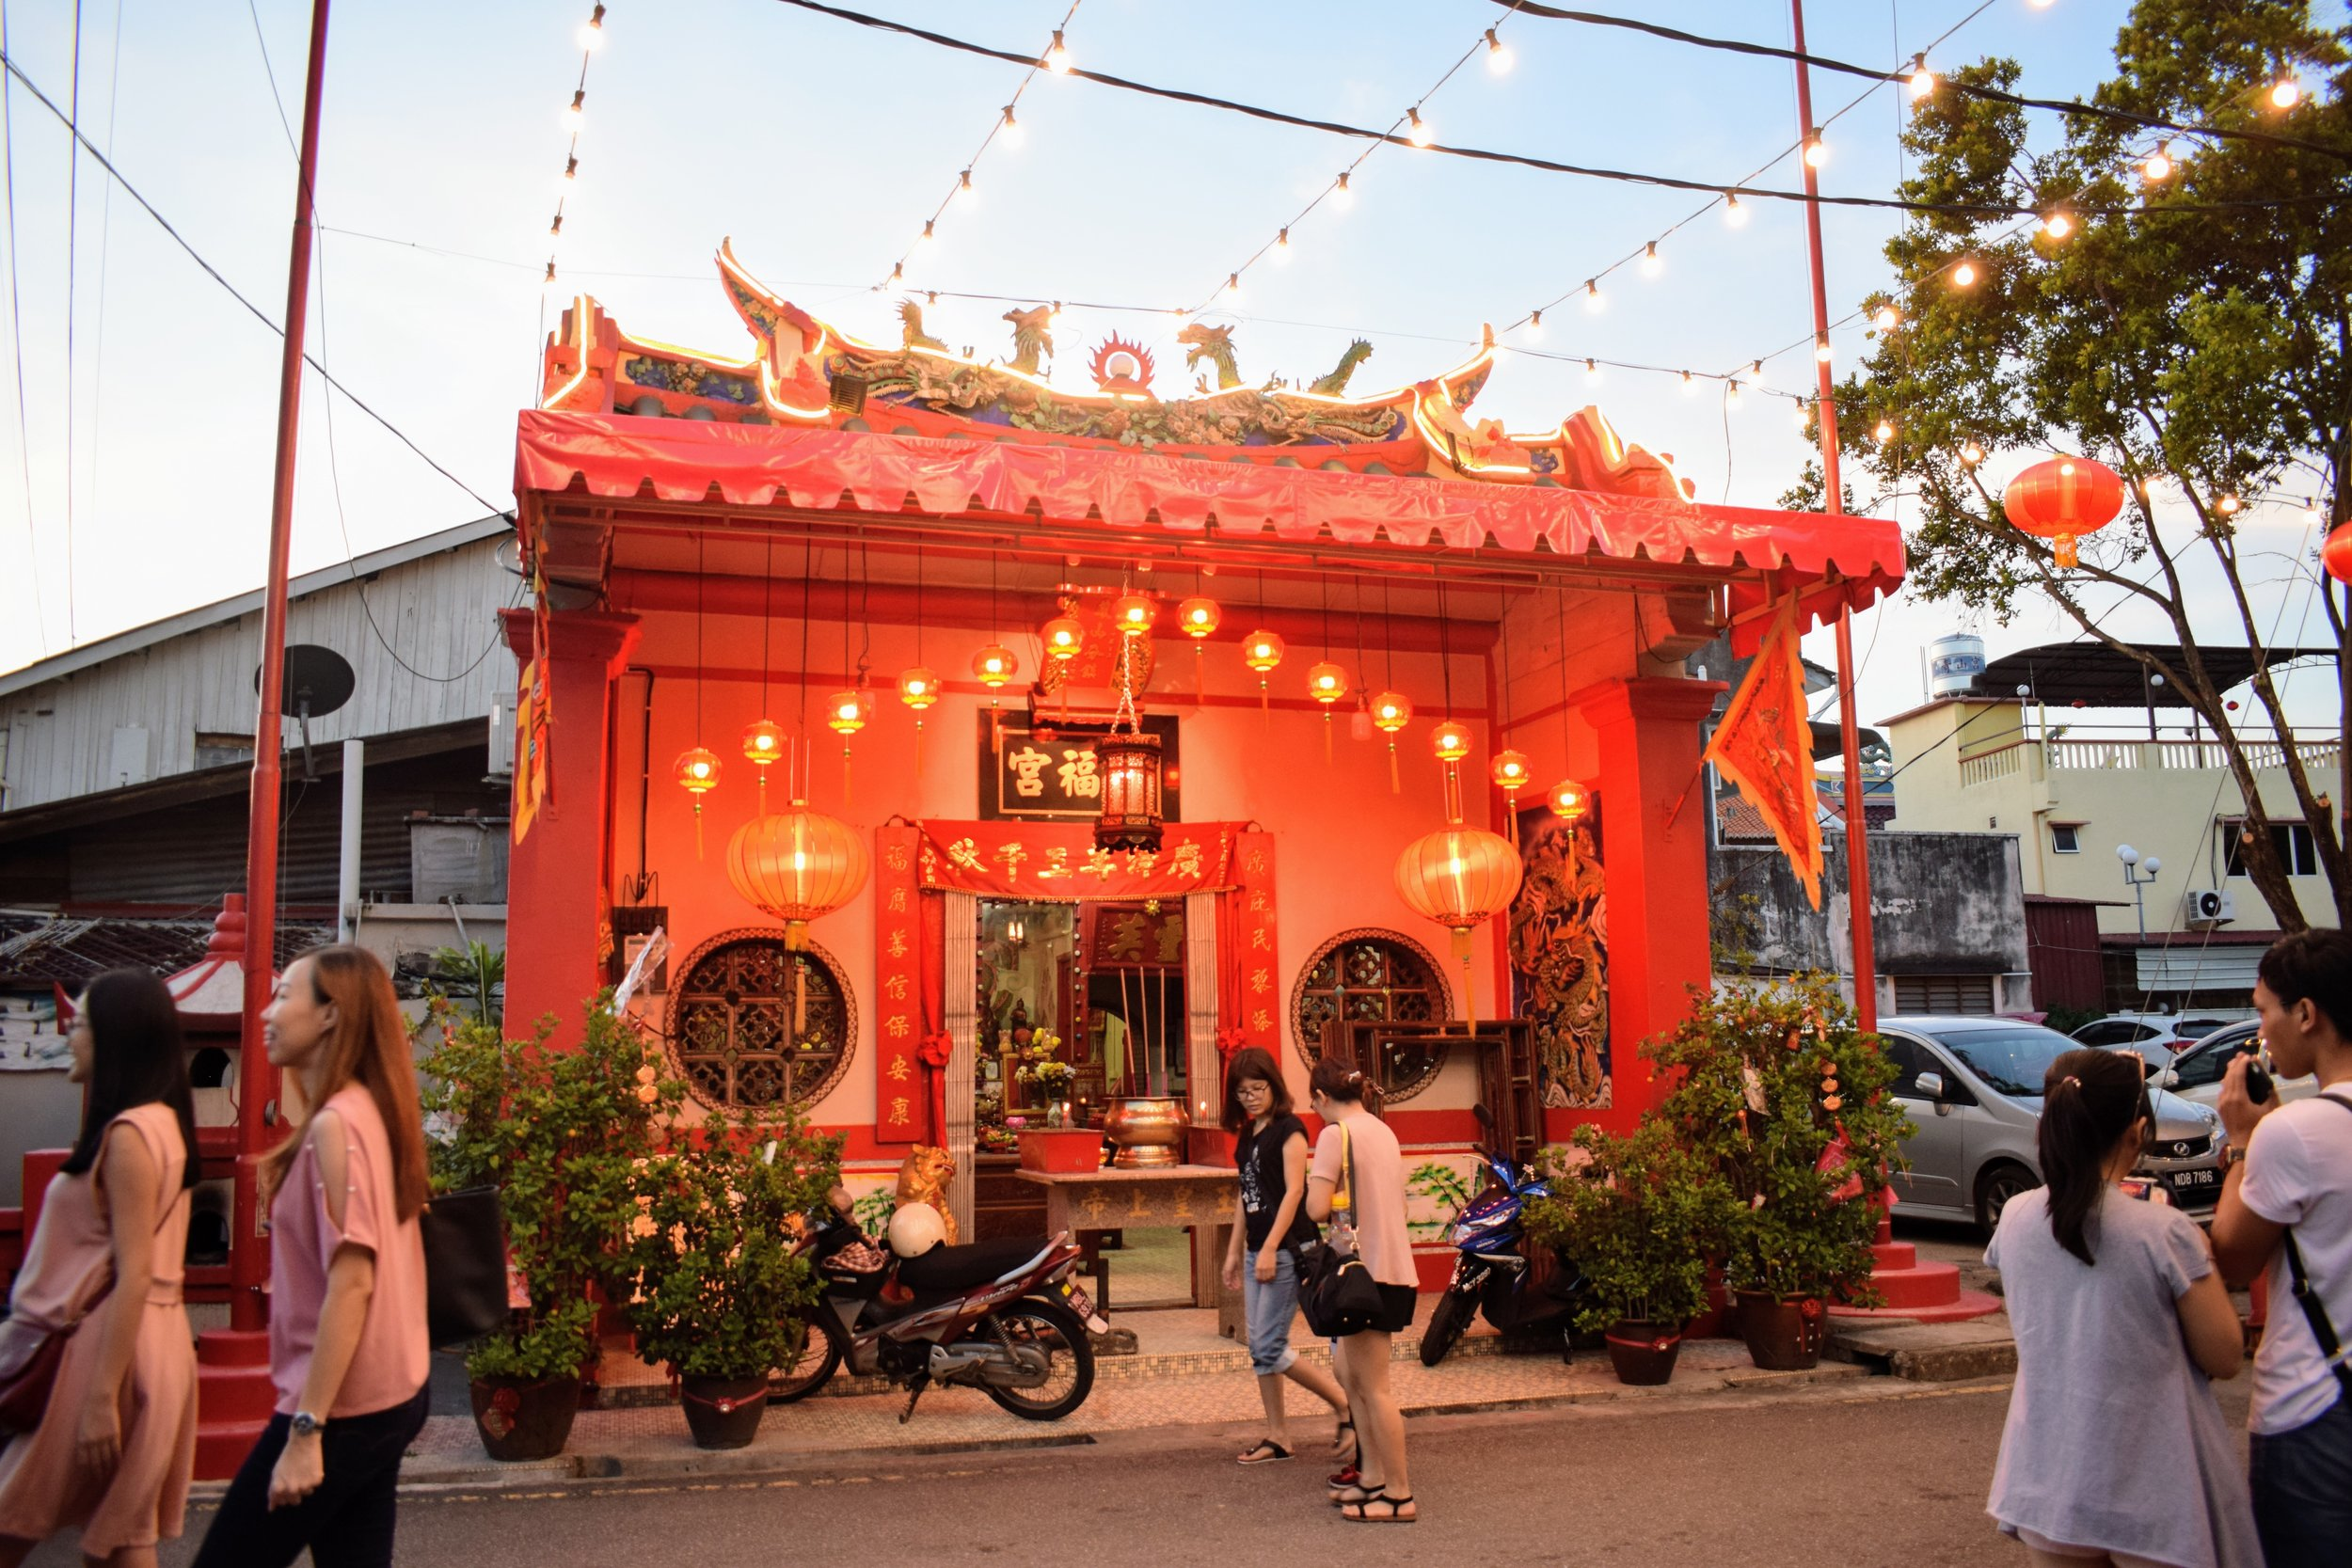 Xiang Lin Si Buddhist temple in the early evening.